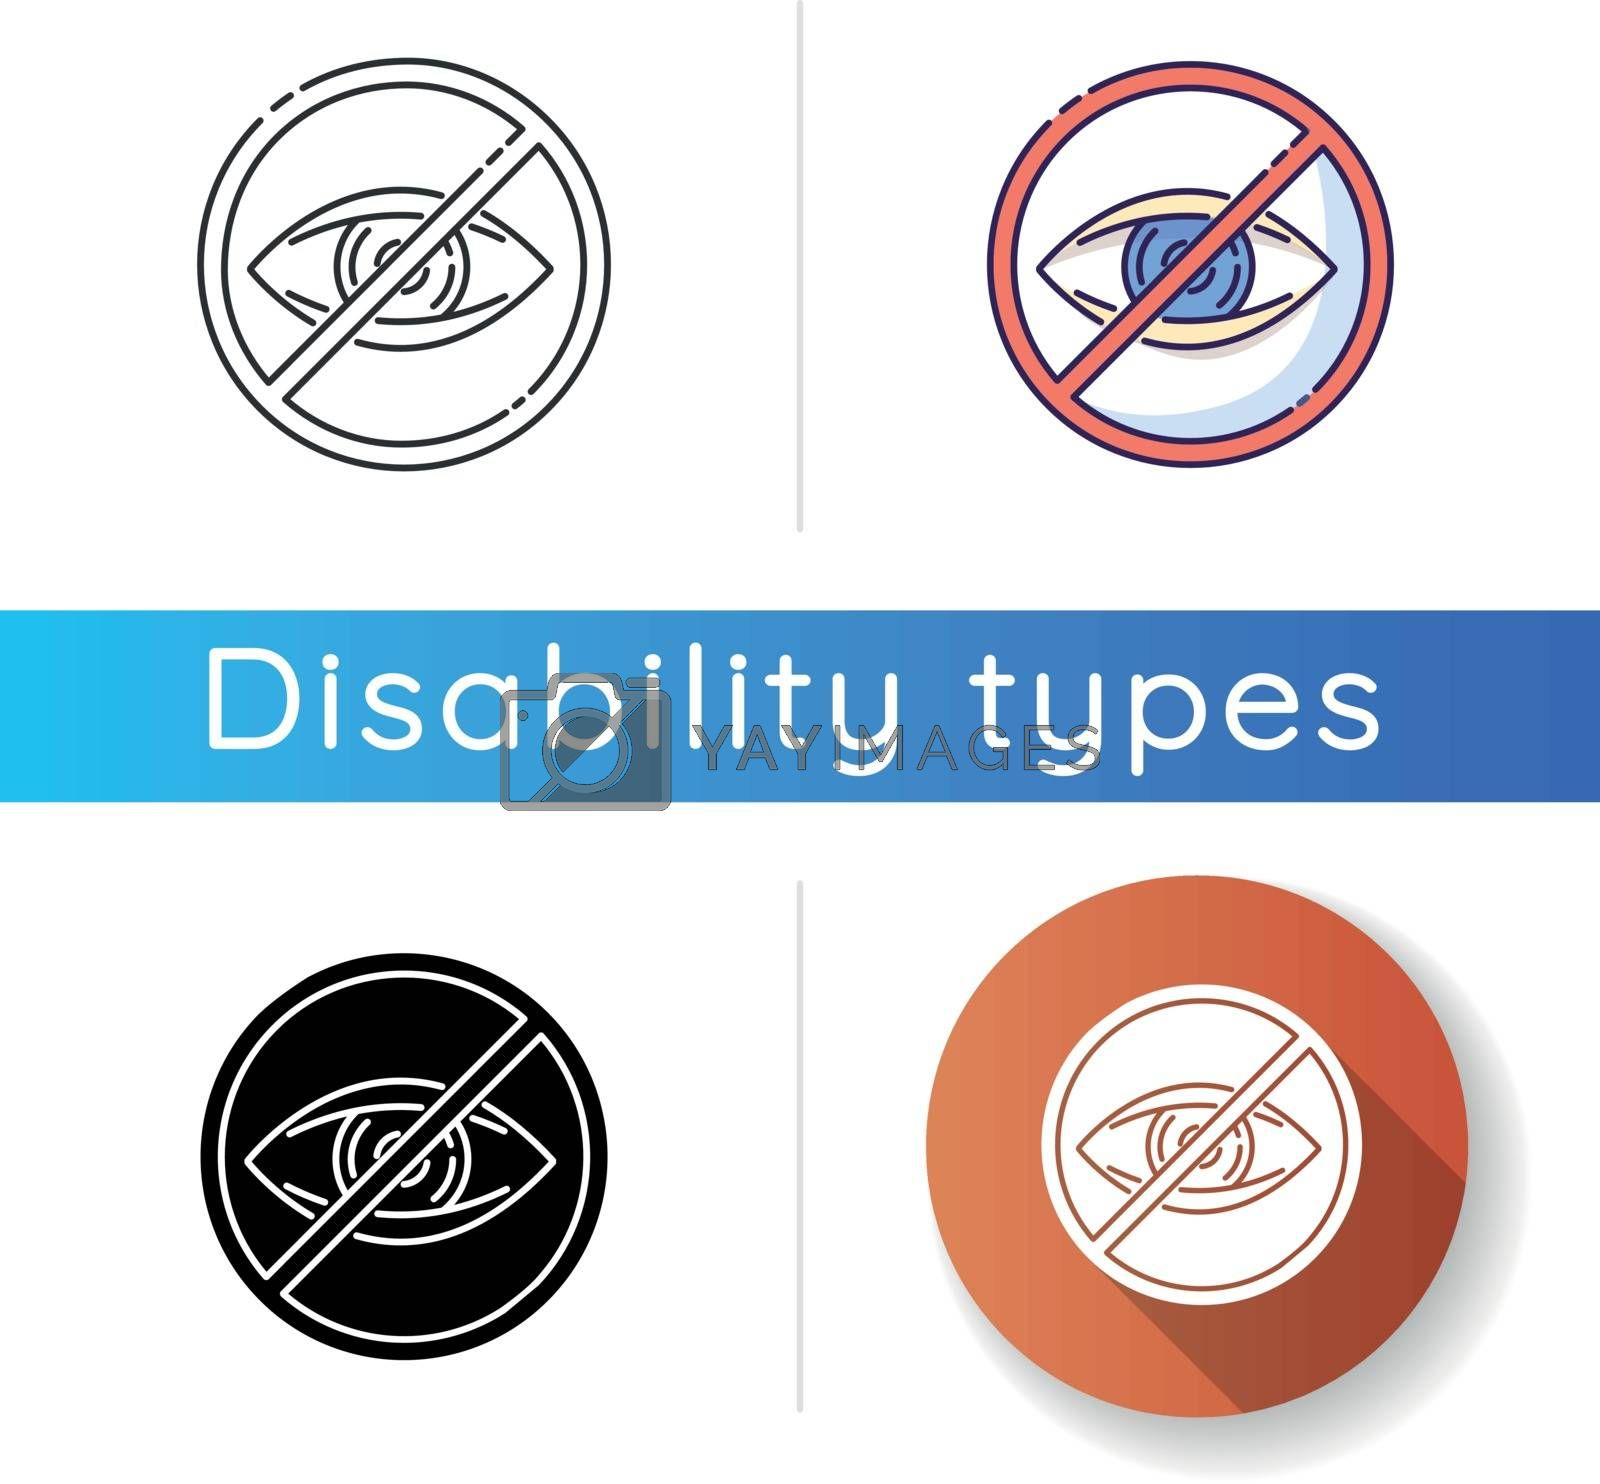 Blindness icon. Patient with lost eyesight. Legally blind. Vision impairment. Eye defect. Health care problem. Conceal sight. Linear black and RGB color styles. Isolated vector illustrations